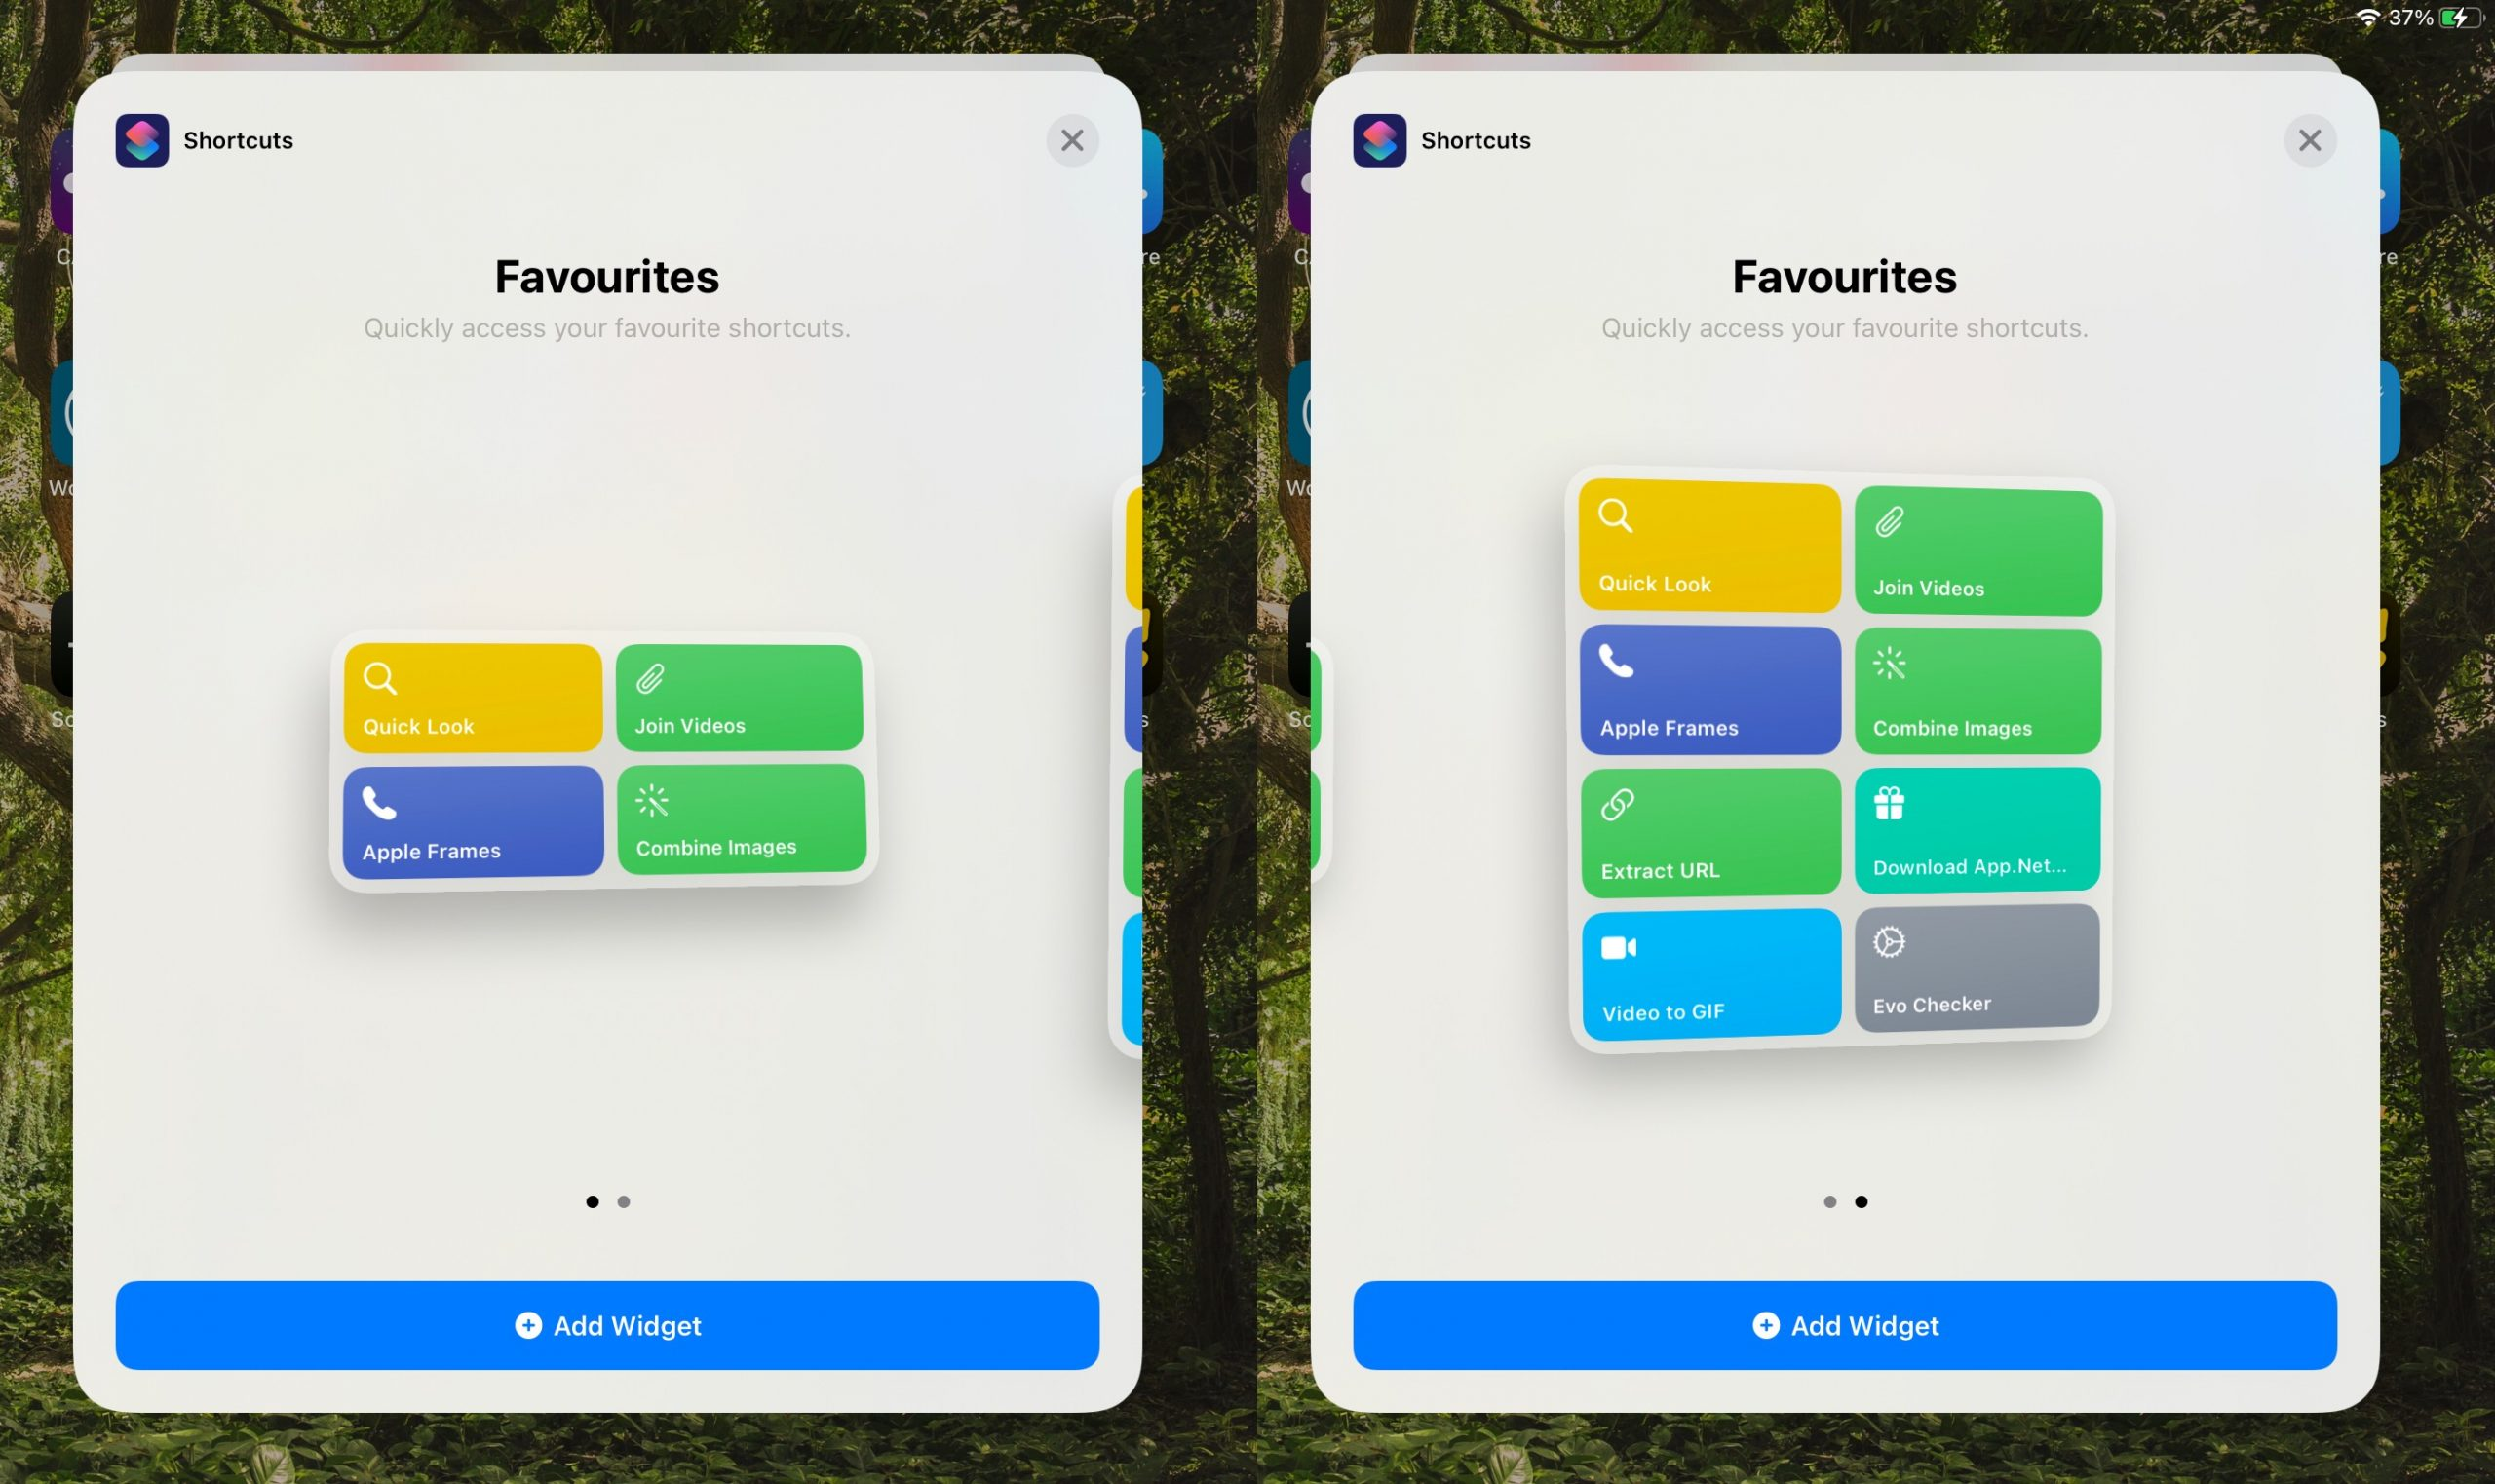 Shortcuts widgets